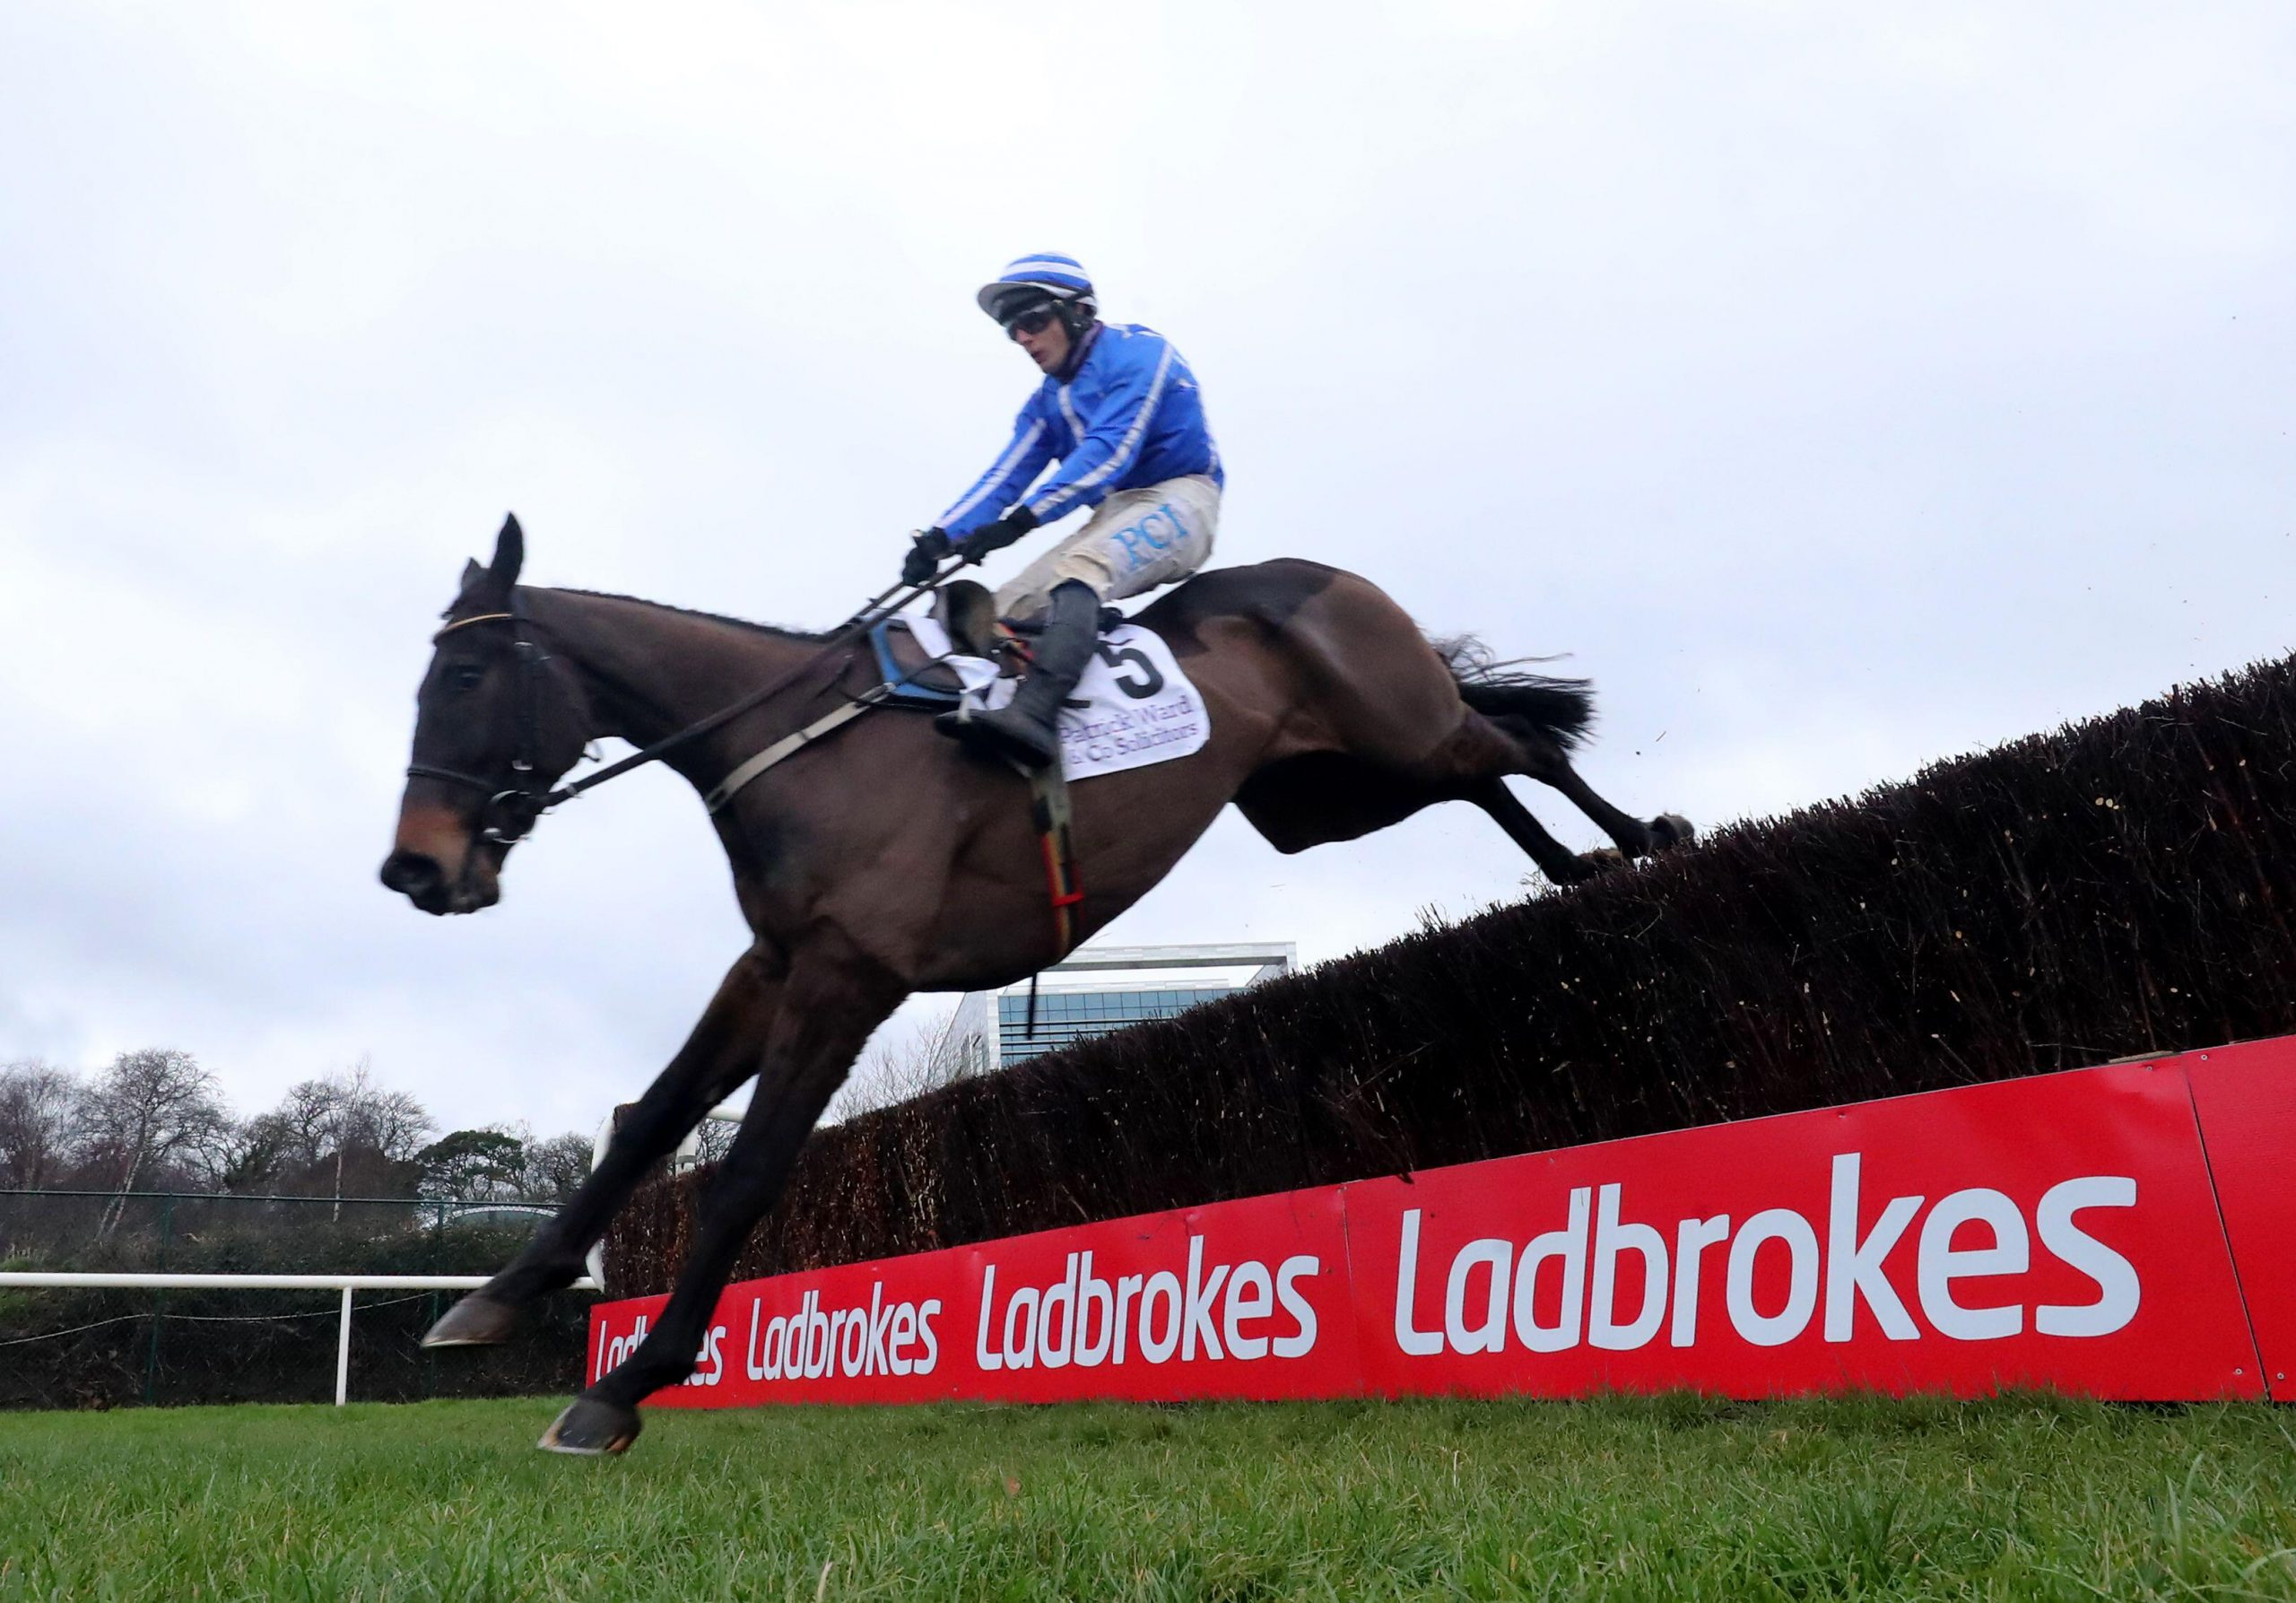 Energumene ridden by Paul Townend clears a fence on their way to winning the Patrick Ward & Co. Solicitors Irish Arkle Novice Chase during day one of the Dublin Racing Festival at Leopardstown Racecourse. Picture date: Saturday February 6, 2021.